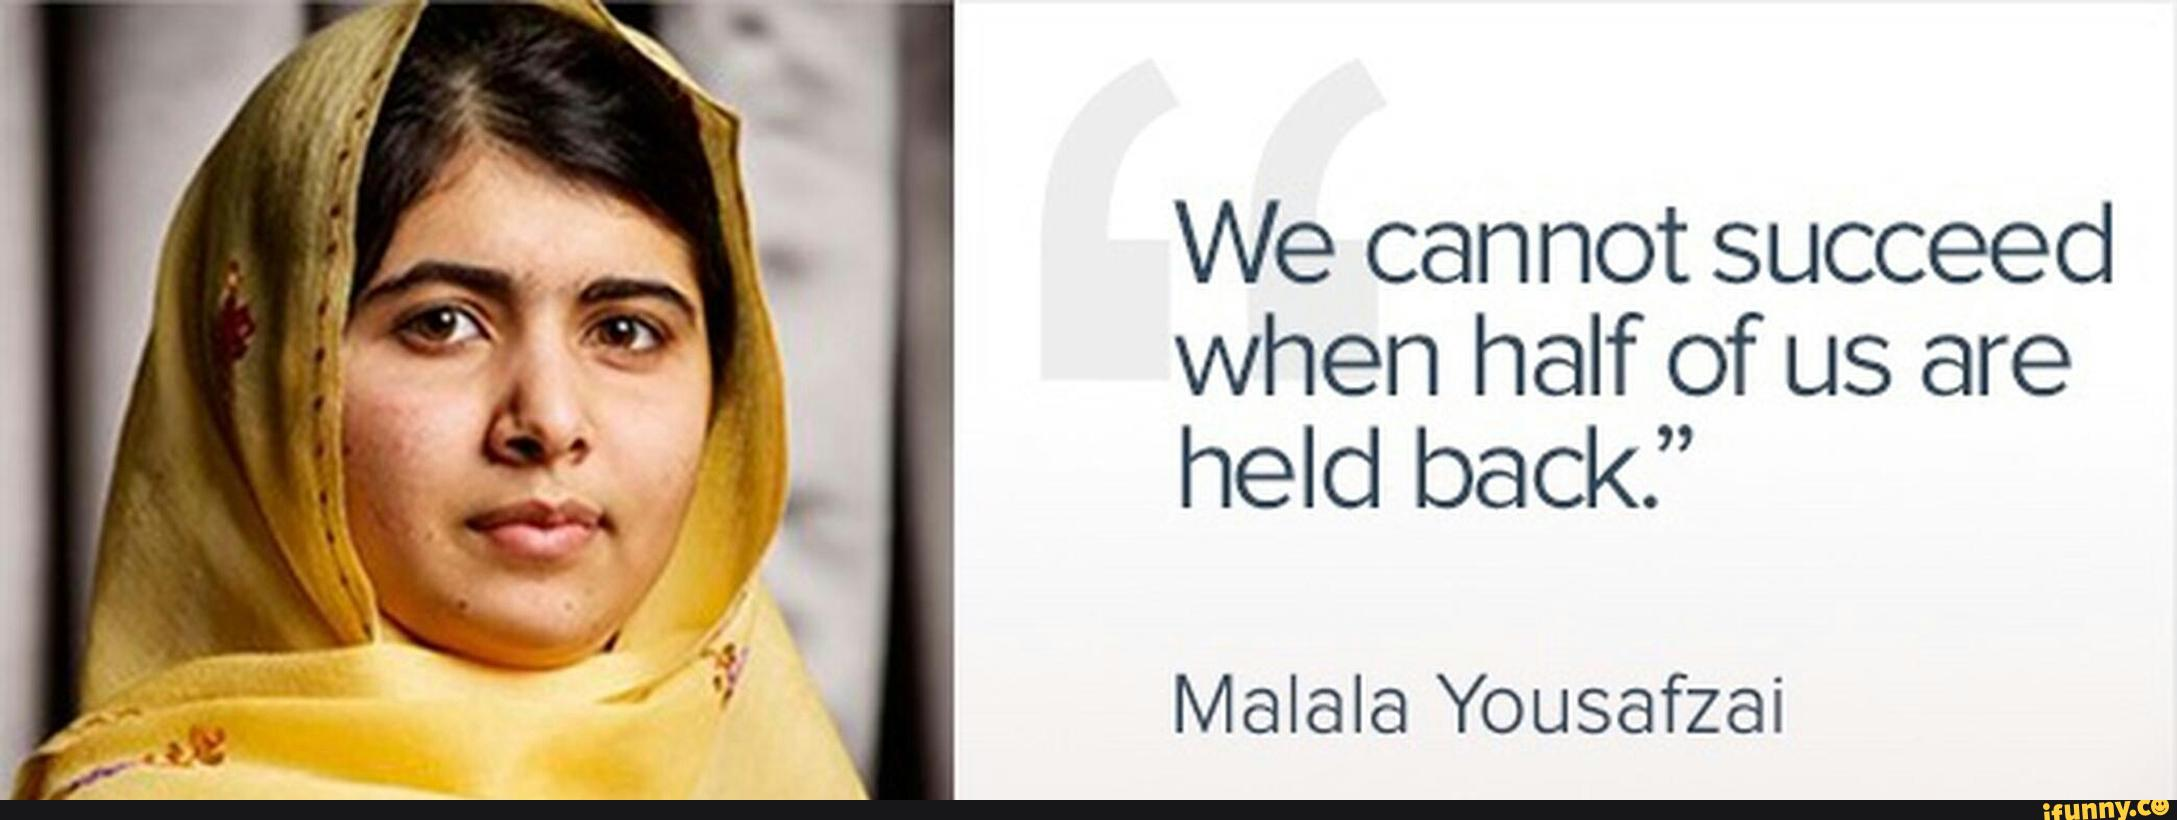 malala yousafzai a womens rights activist and one of the bravest women in the world